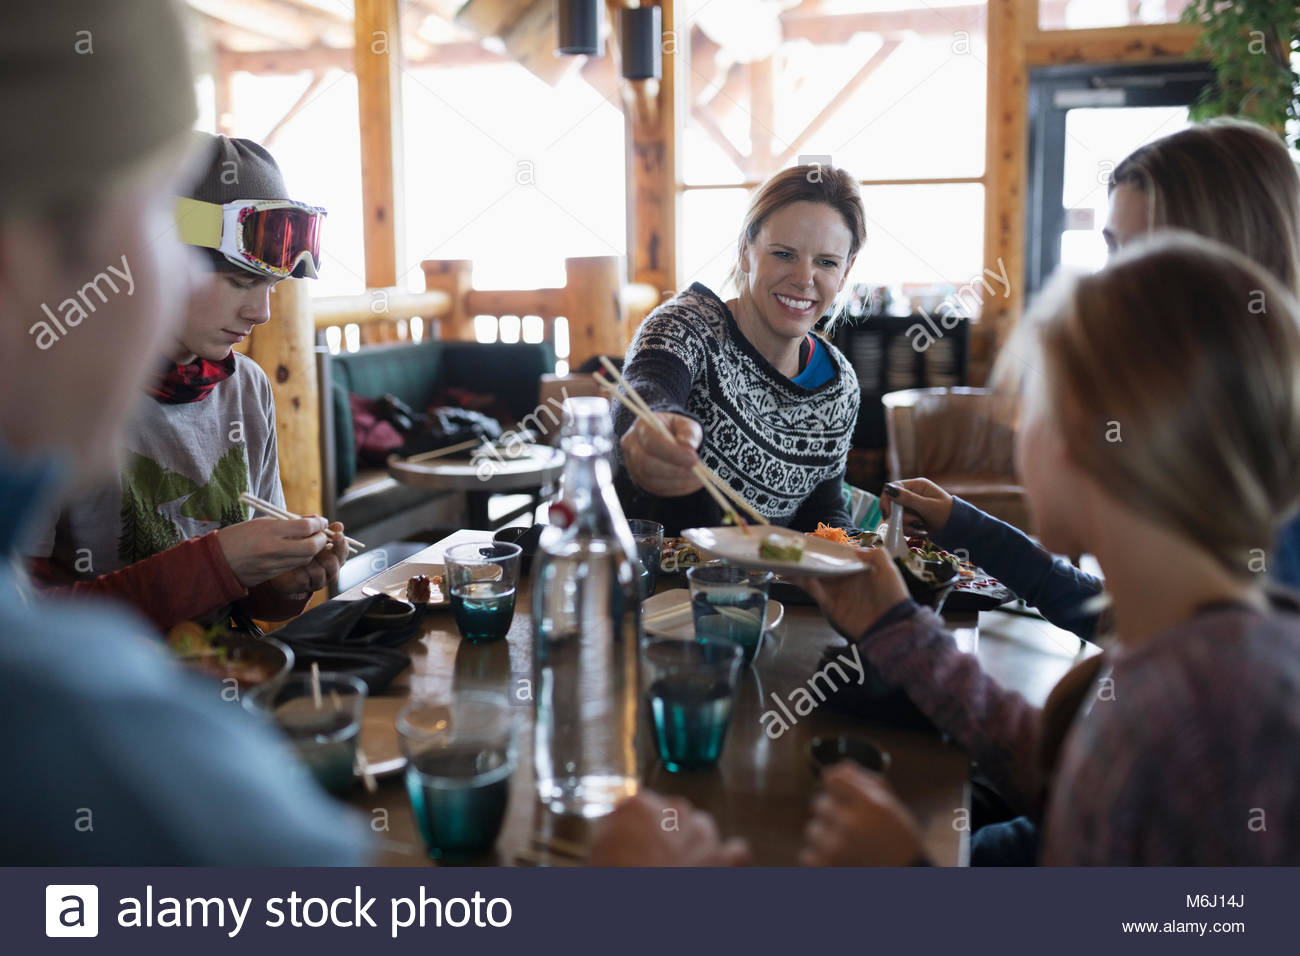 Family skiers enjoying sushi at ski resort restaurant apres-ski - Stock Image